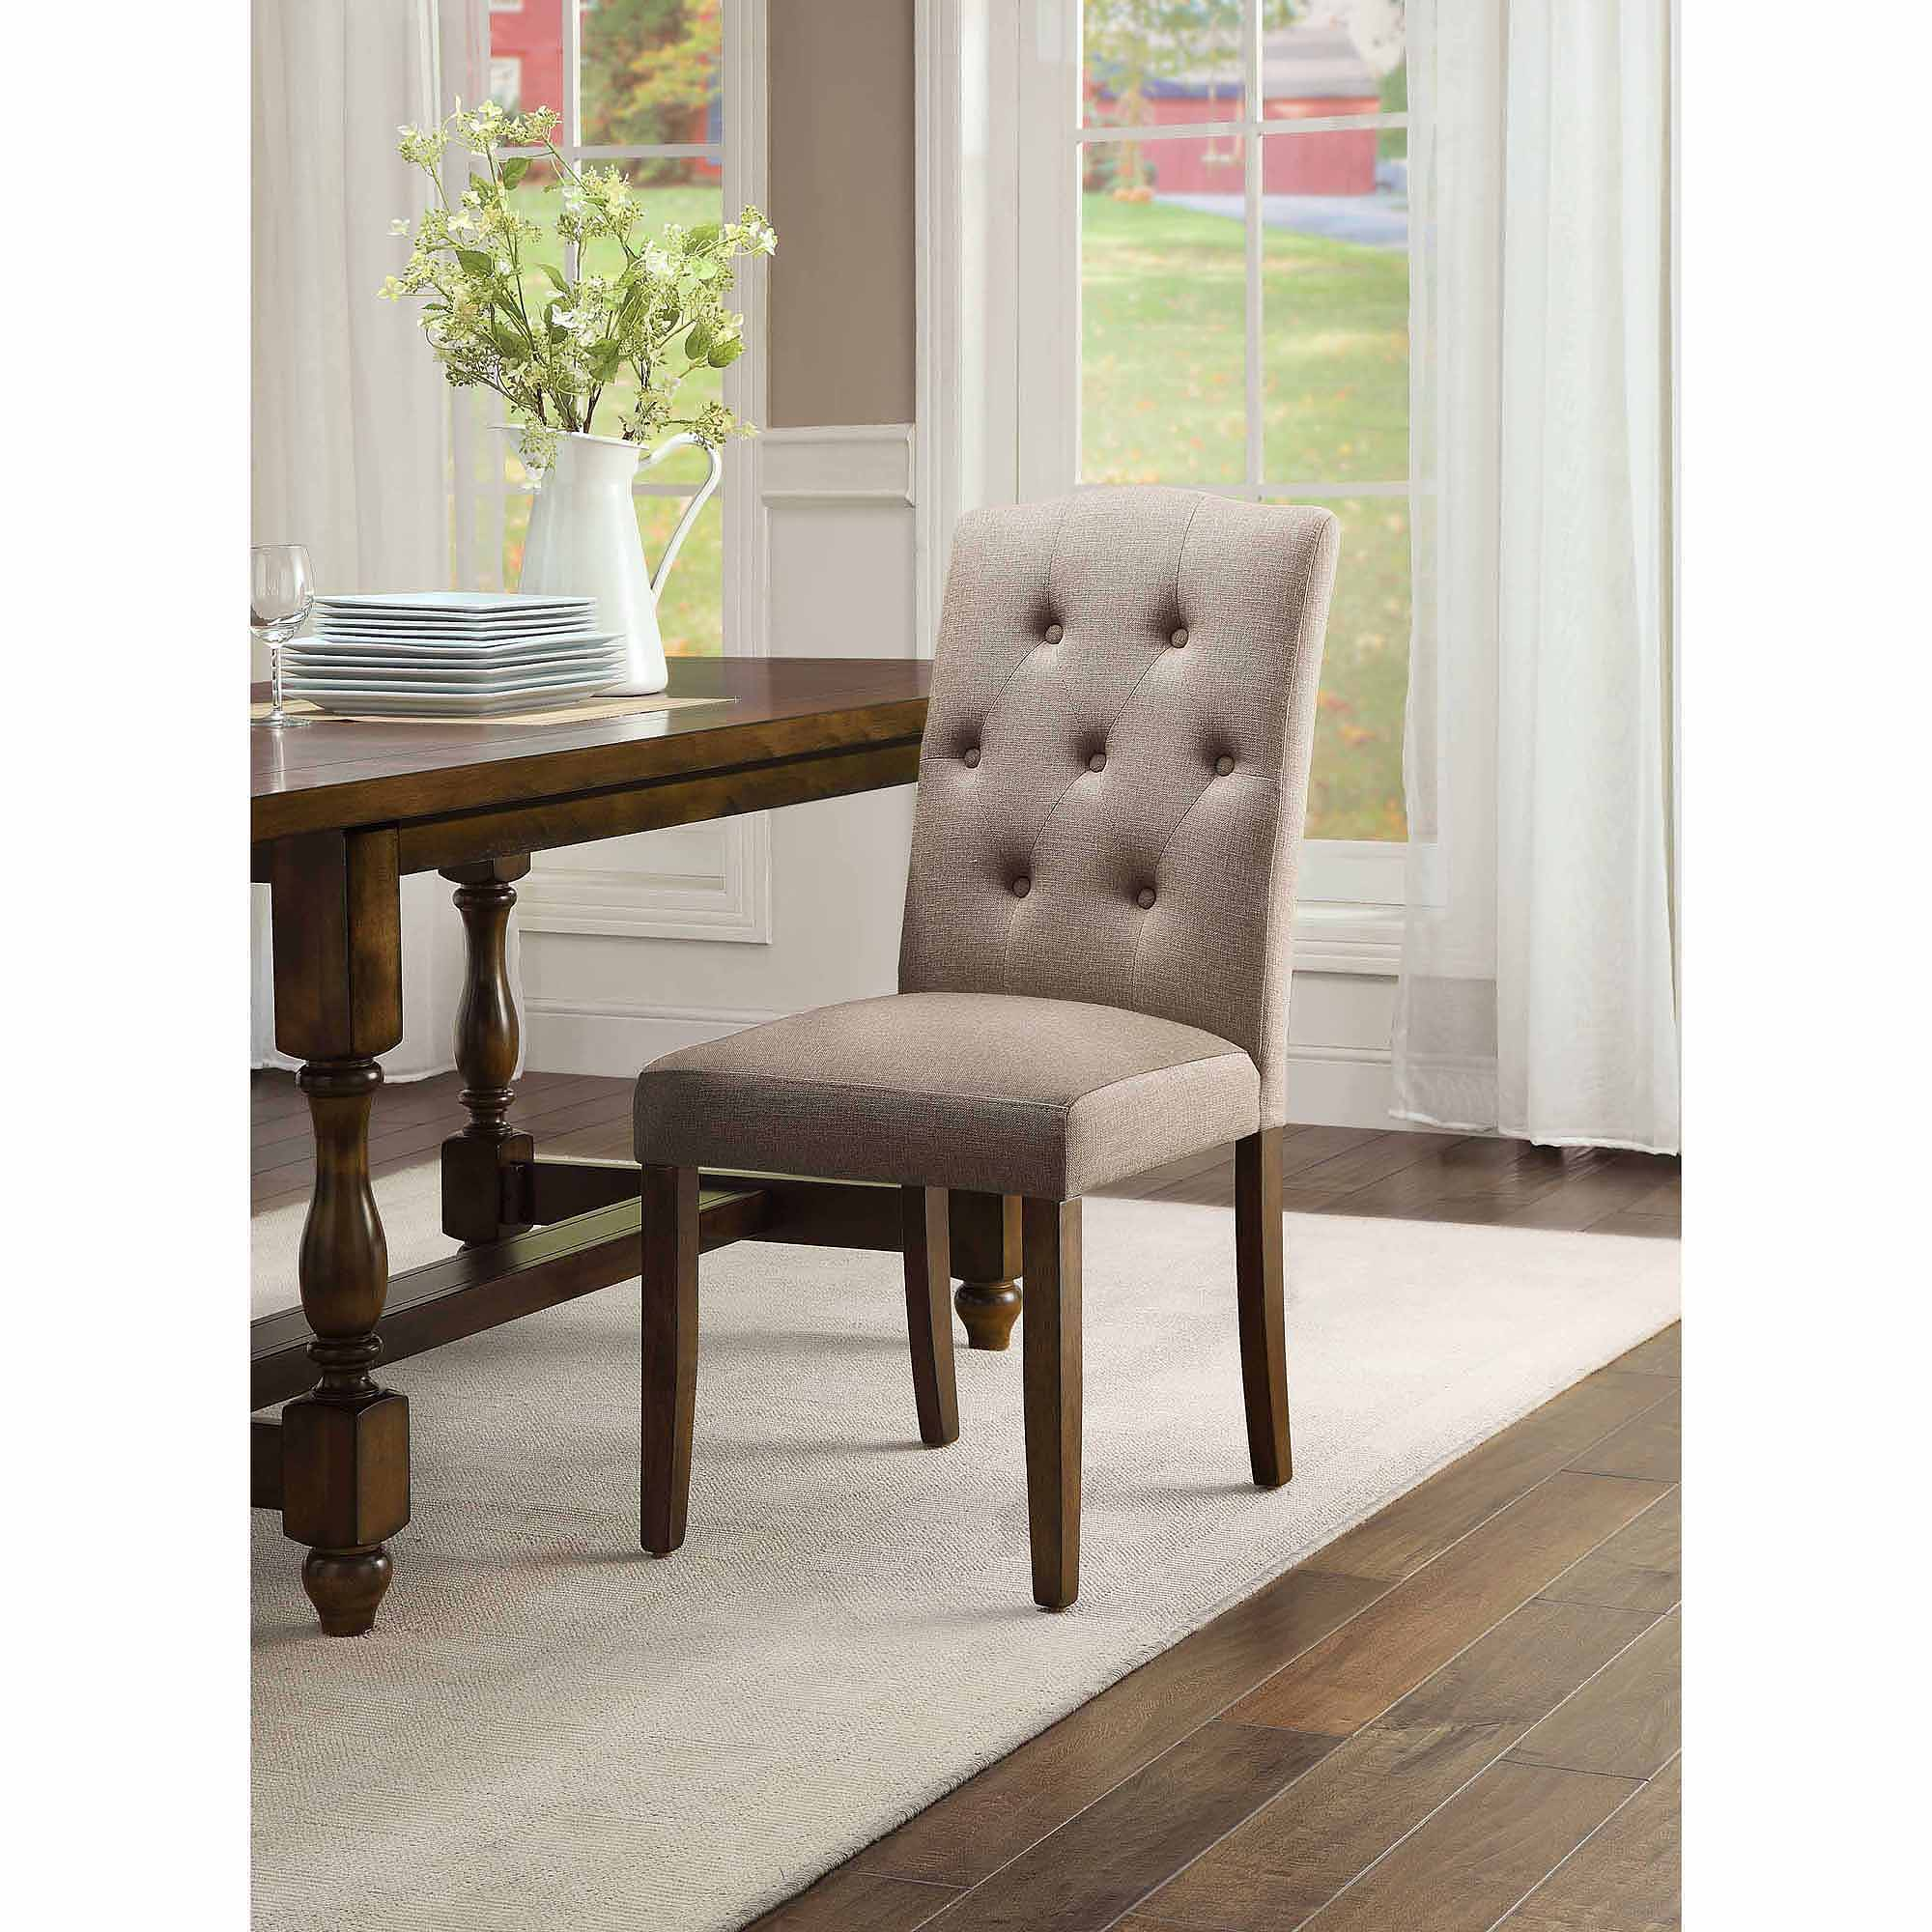 Better Homes and Gardens Providence Upholstered Chair, Beige